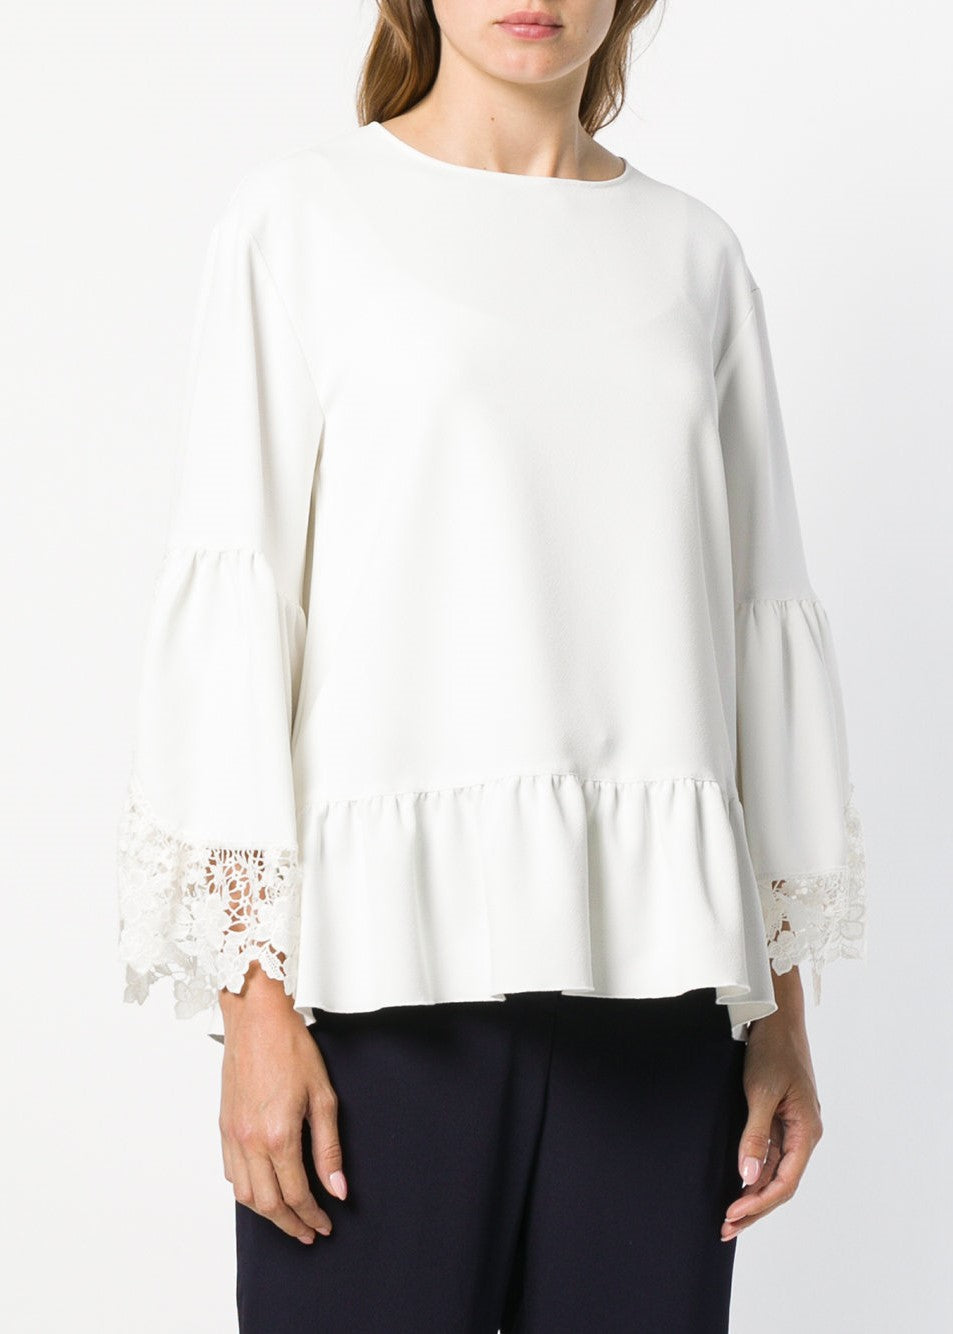 See By Chloe lace trim top in misty ivory